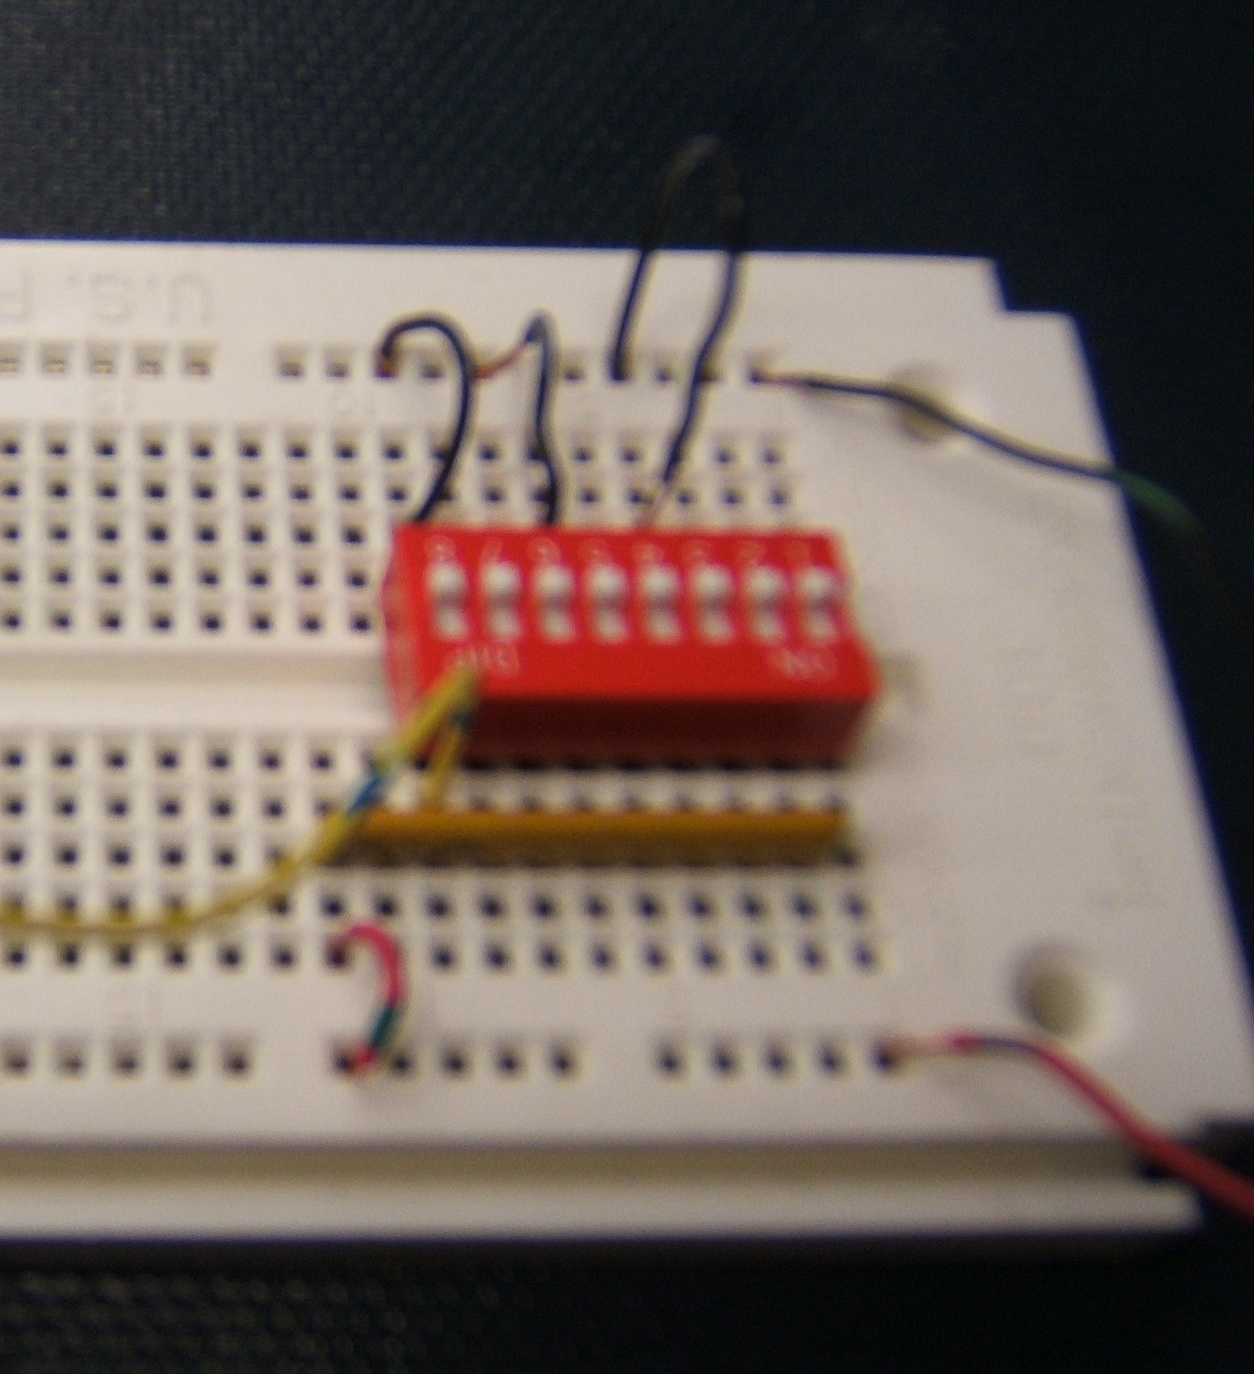 hight resolution of dip switch connection